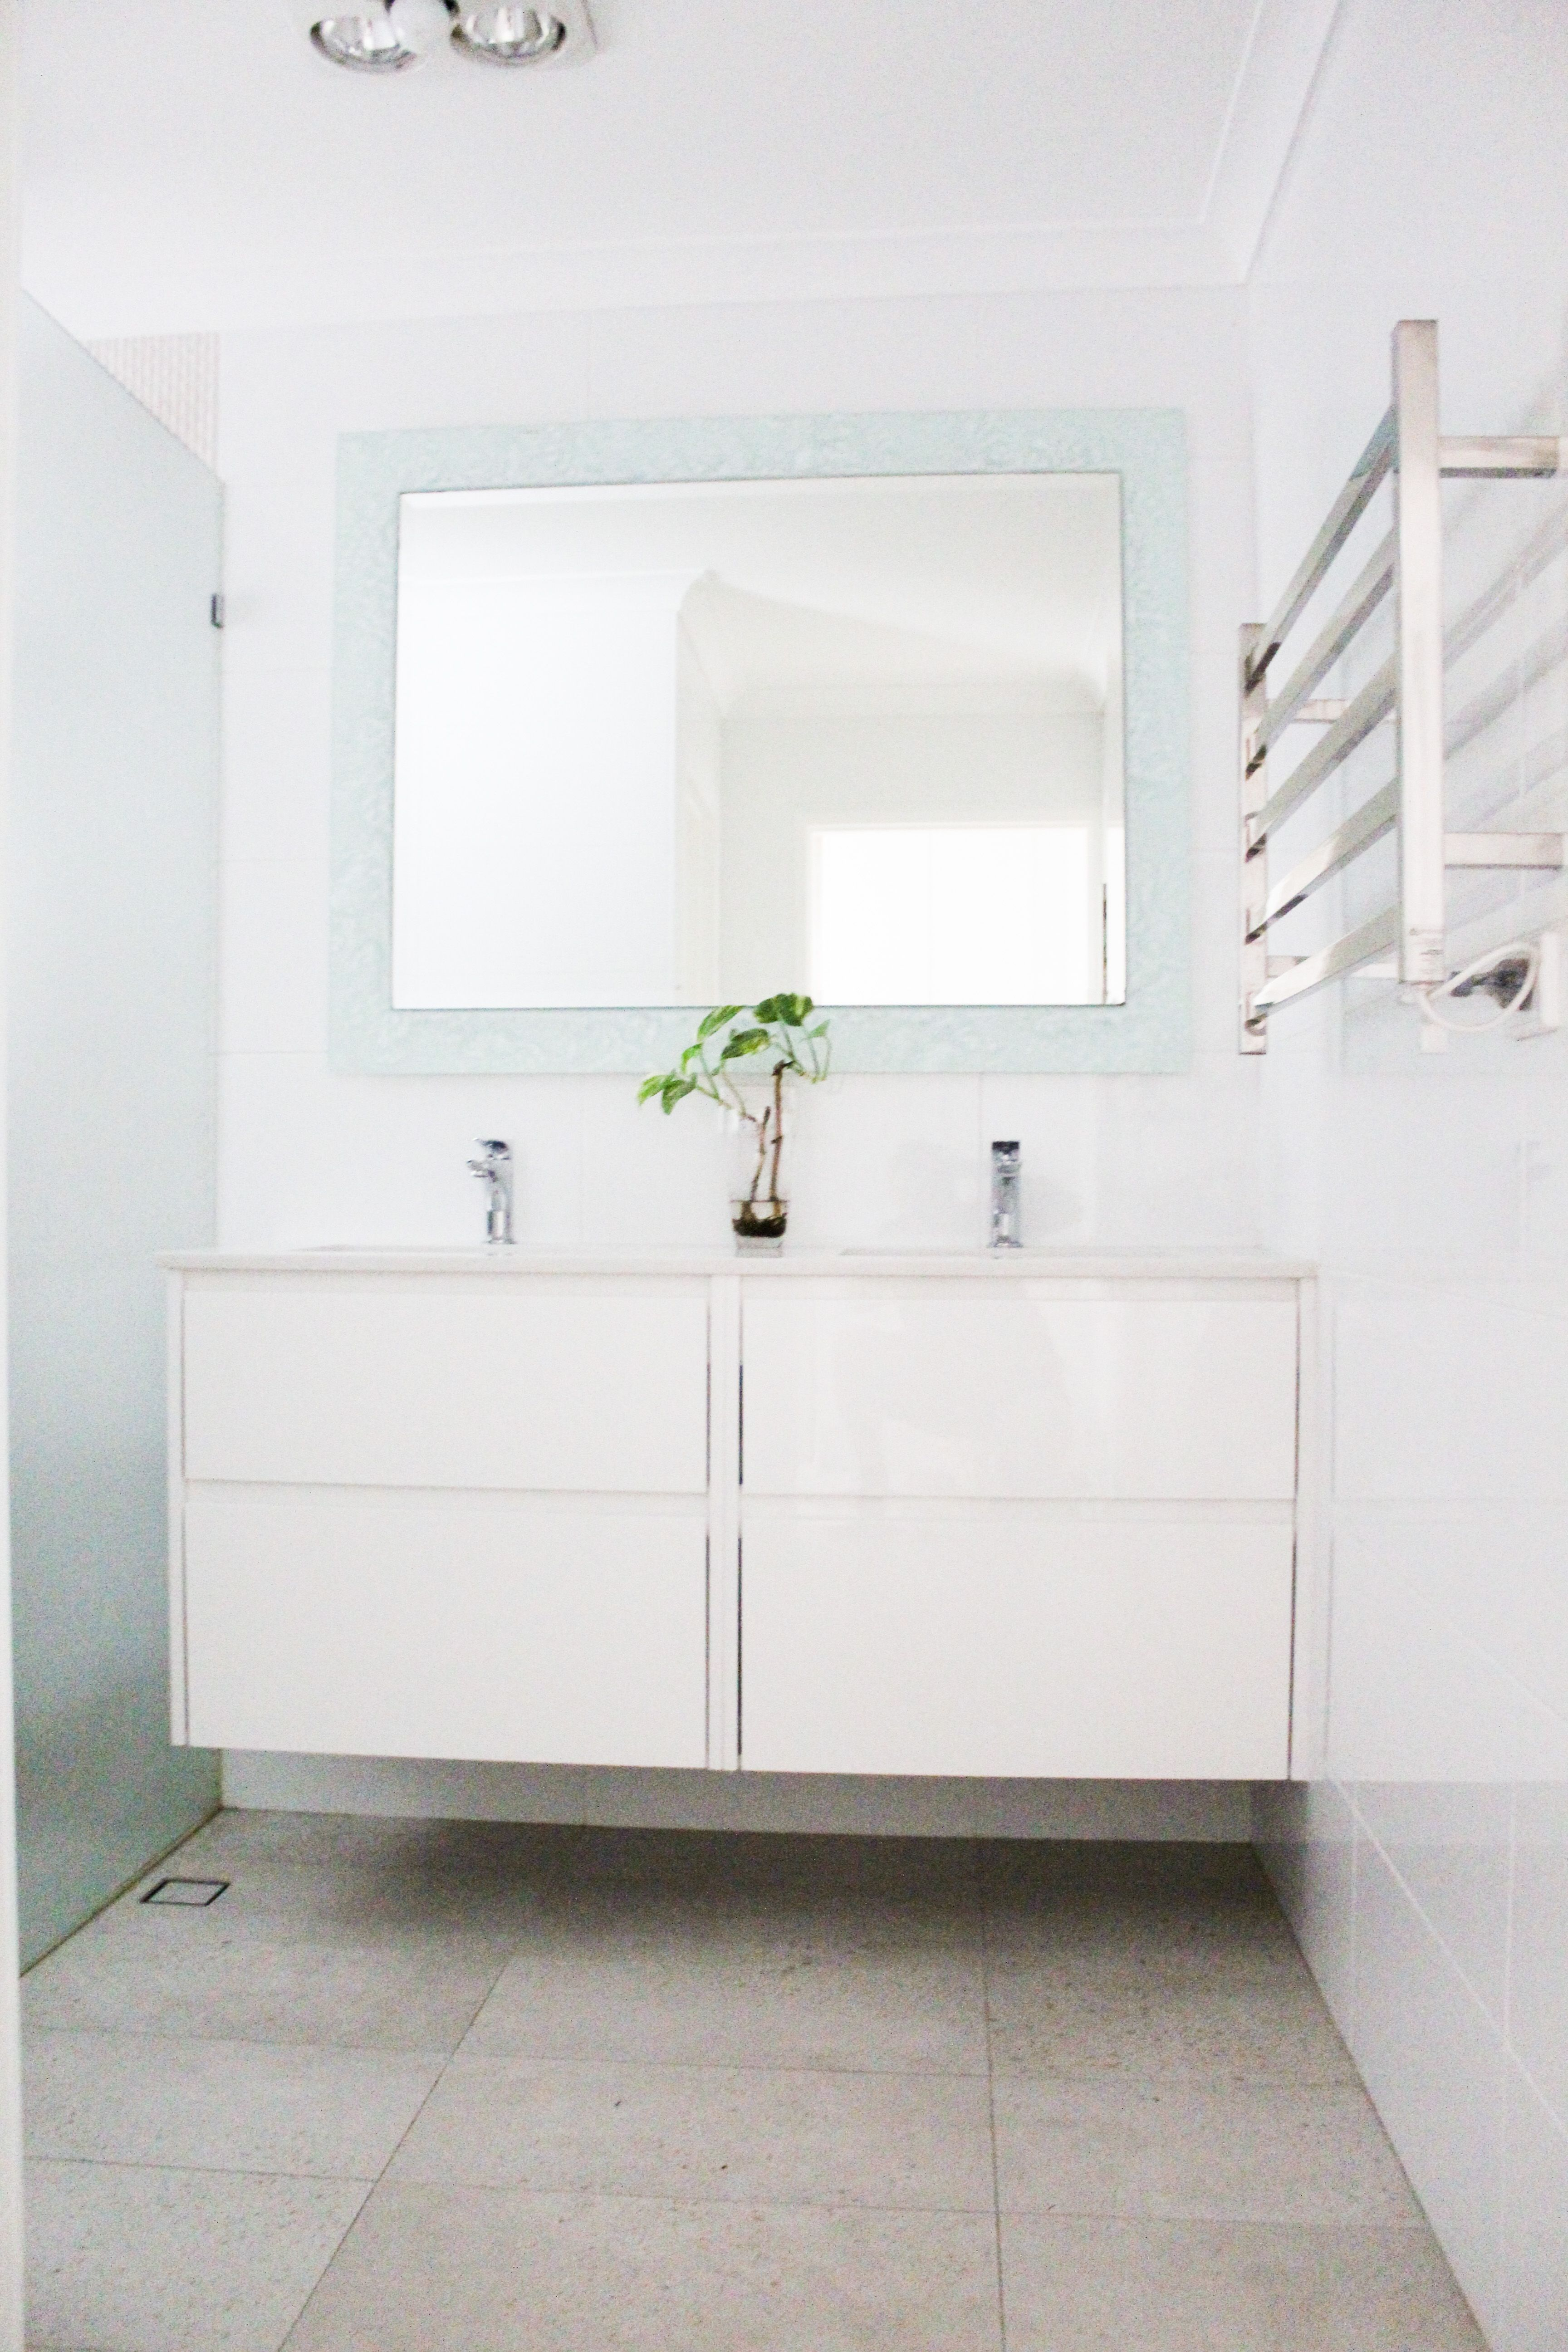 Frameless Frosted Shower Screen Wall Hung Vanity Small Family Bathroom Wet Room Set Up Grey